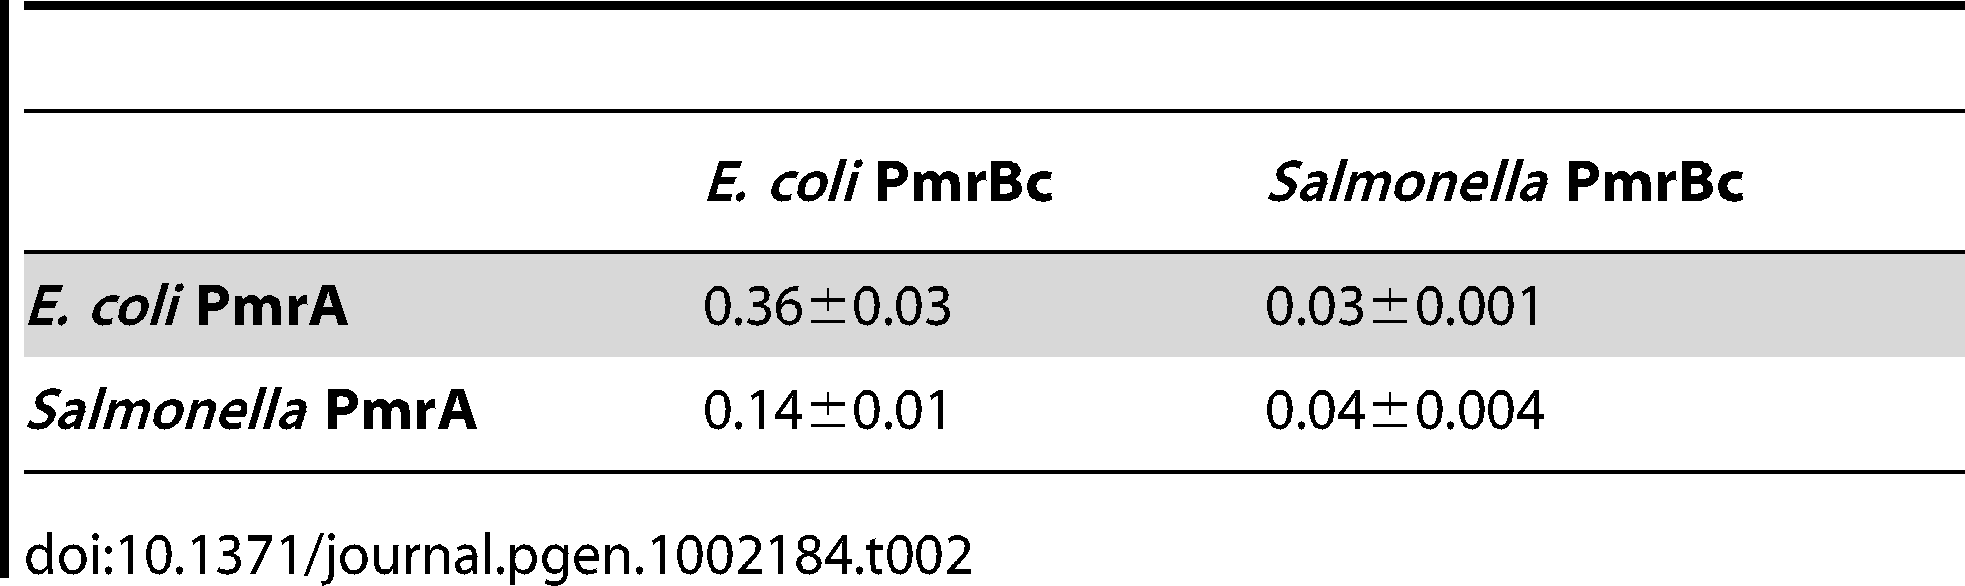 Rate constants for PmrB<sub>c</sub>-mediated dephosphorylation of PmrA-P, <i>k<sub>observed</sub></i> (min<sup>−1</sup>).